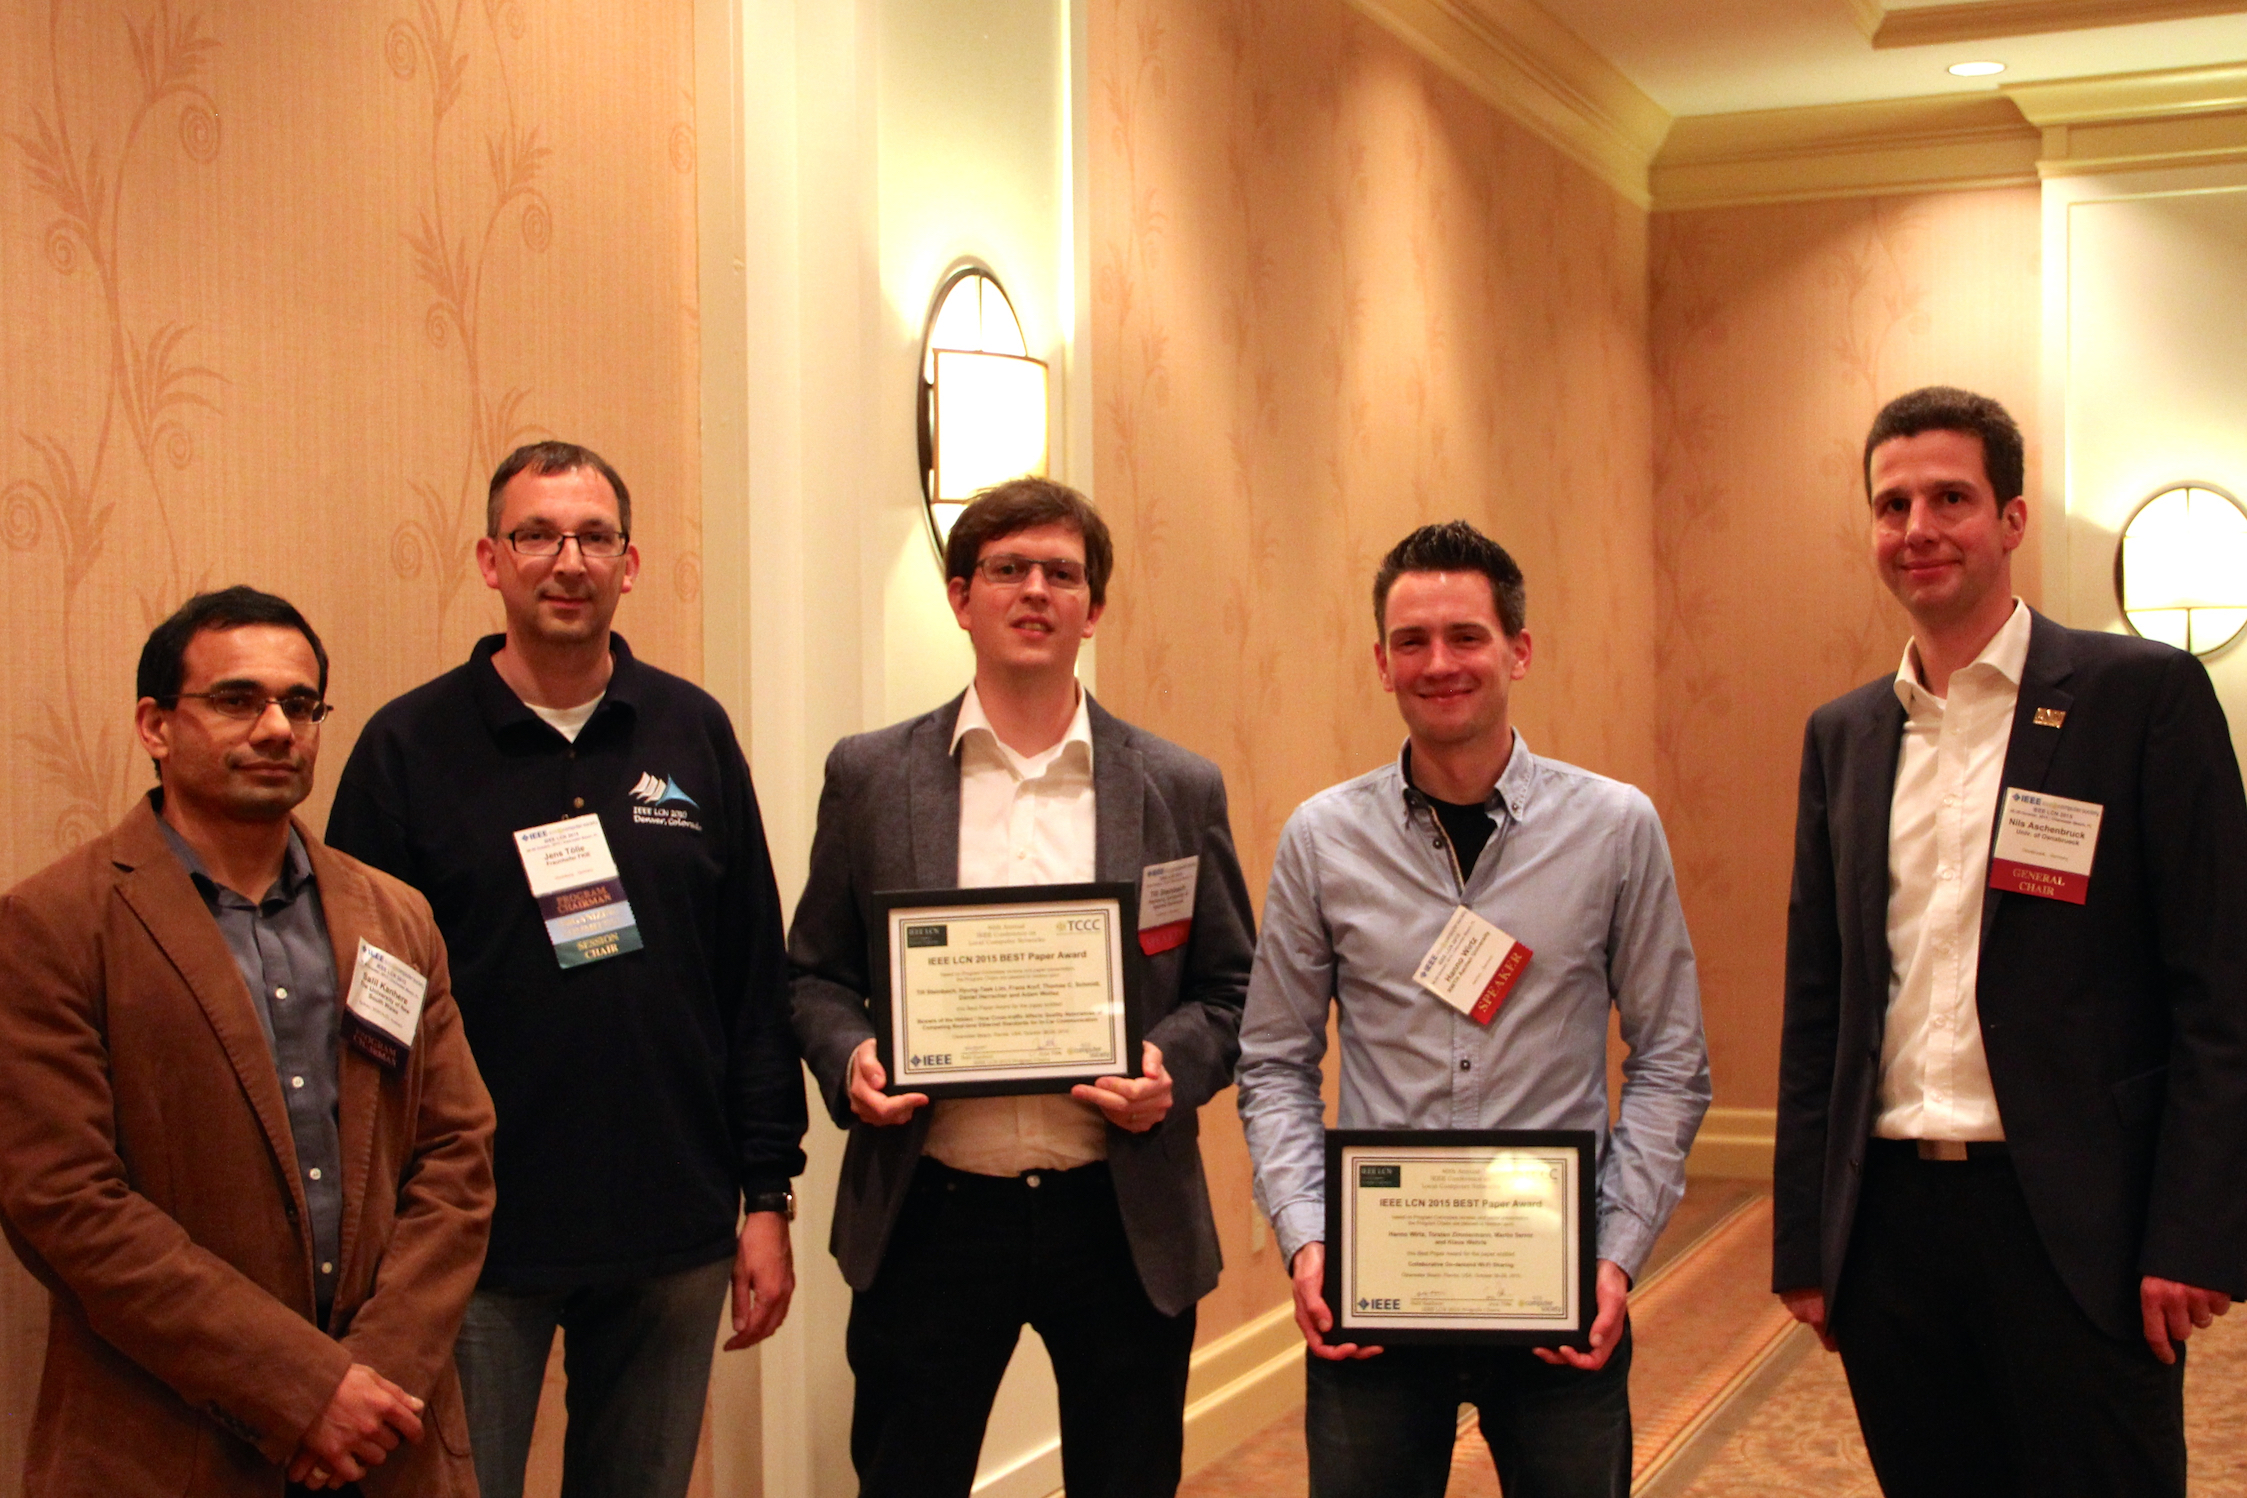 Awards Ceremony of the 40th IEEE LCN Conference in Clearwater Beach, Florida (Photo: Leah Pope)